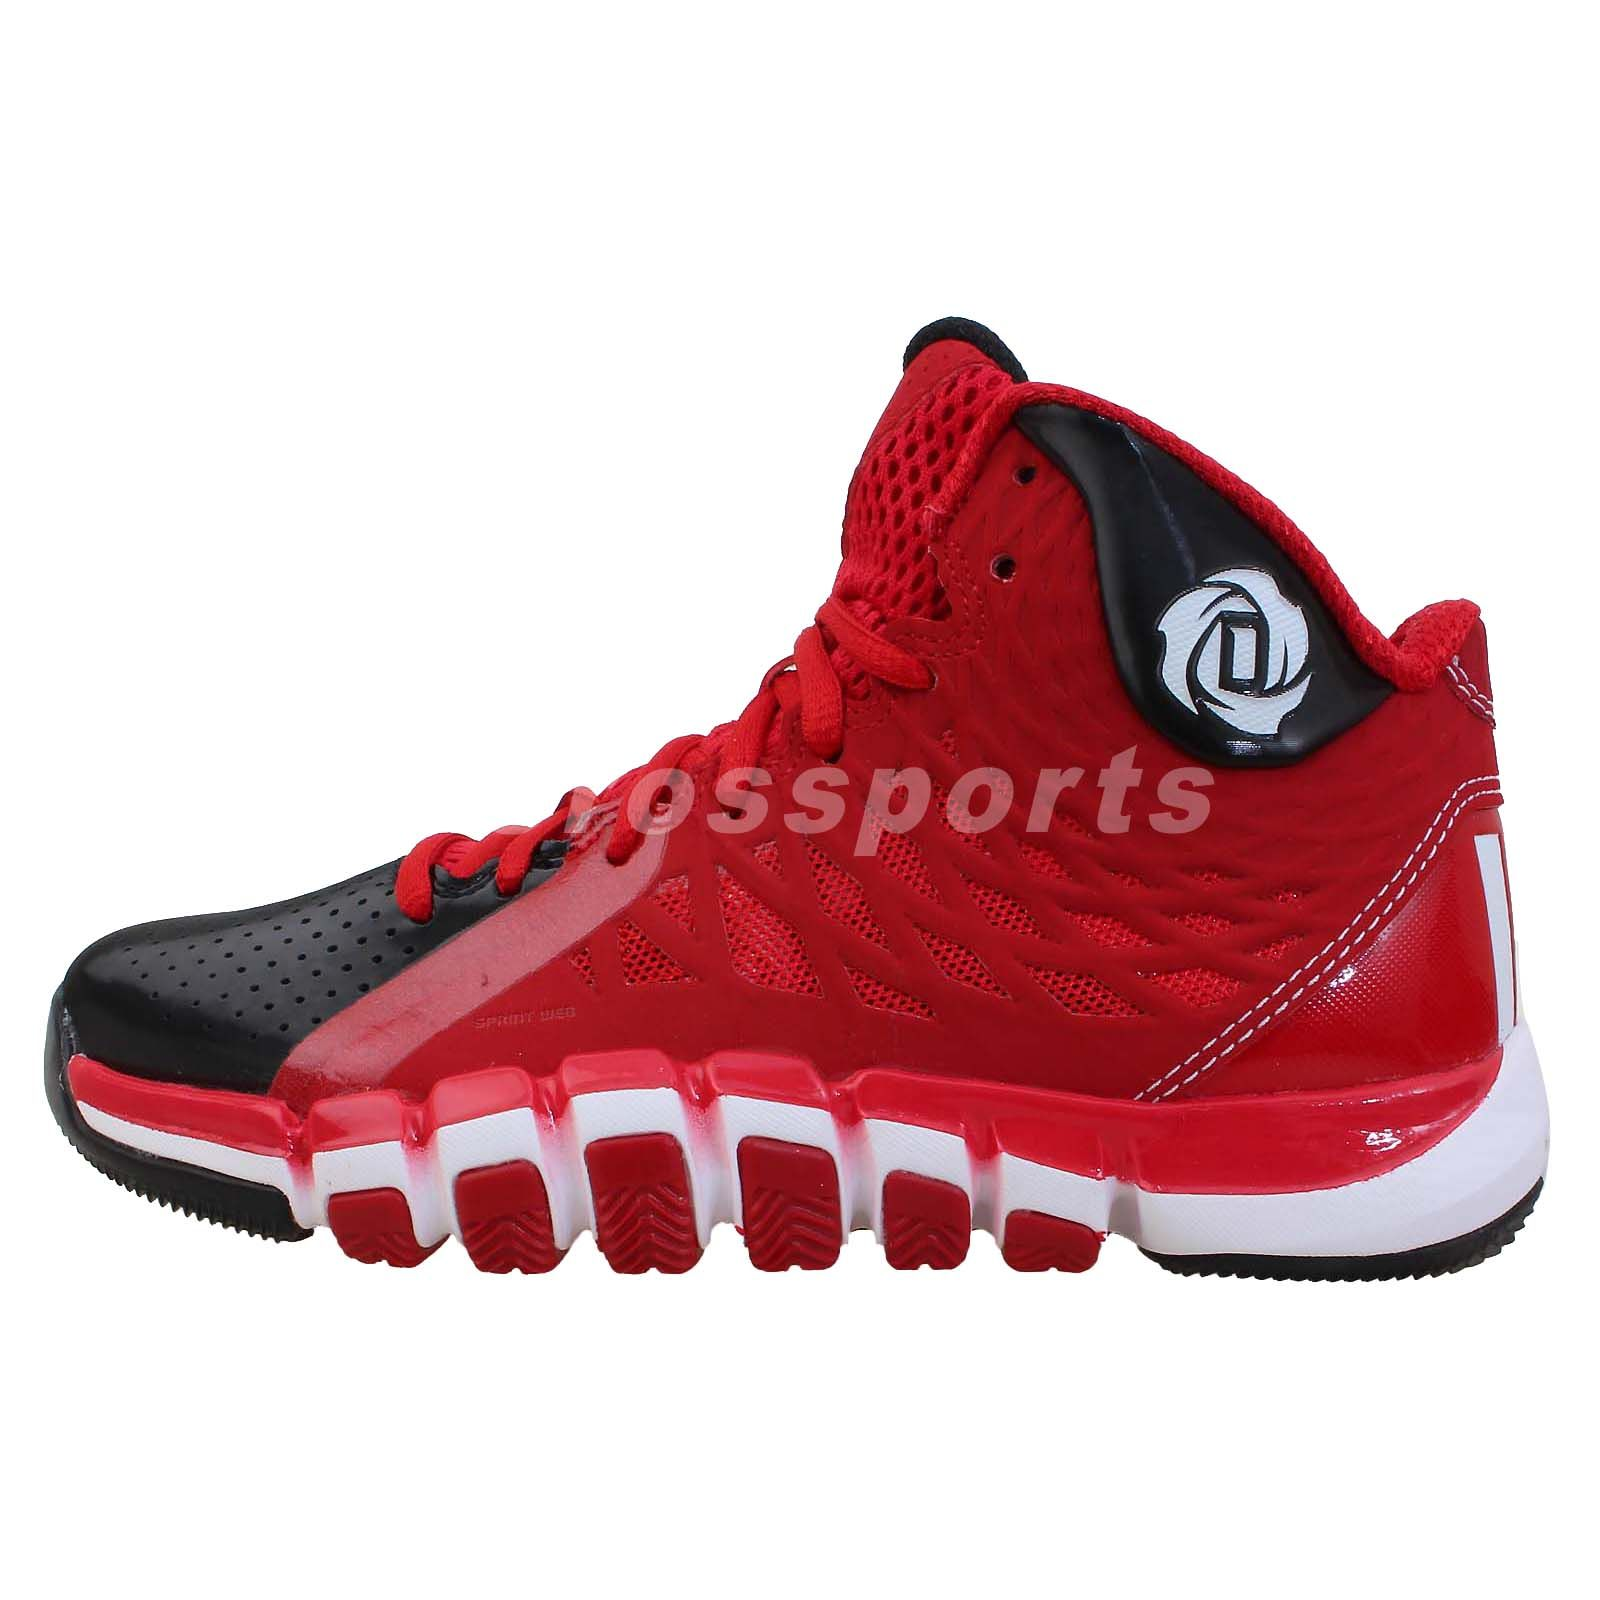 Cheap deals on Adidas Boys Basketball Shoes